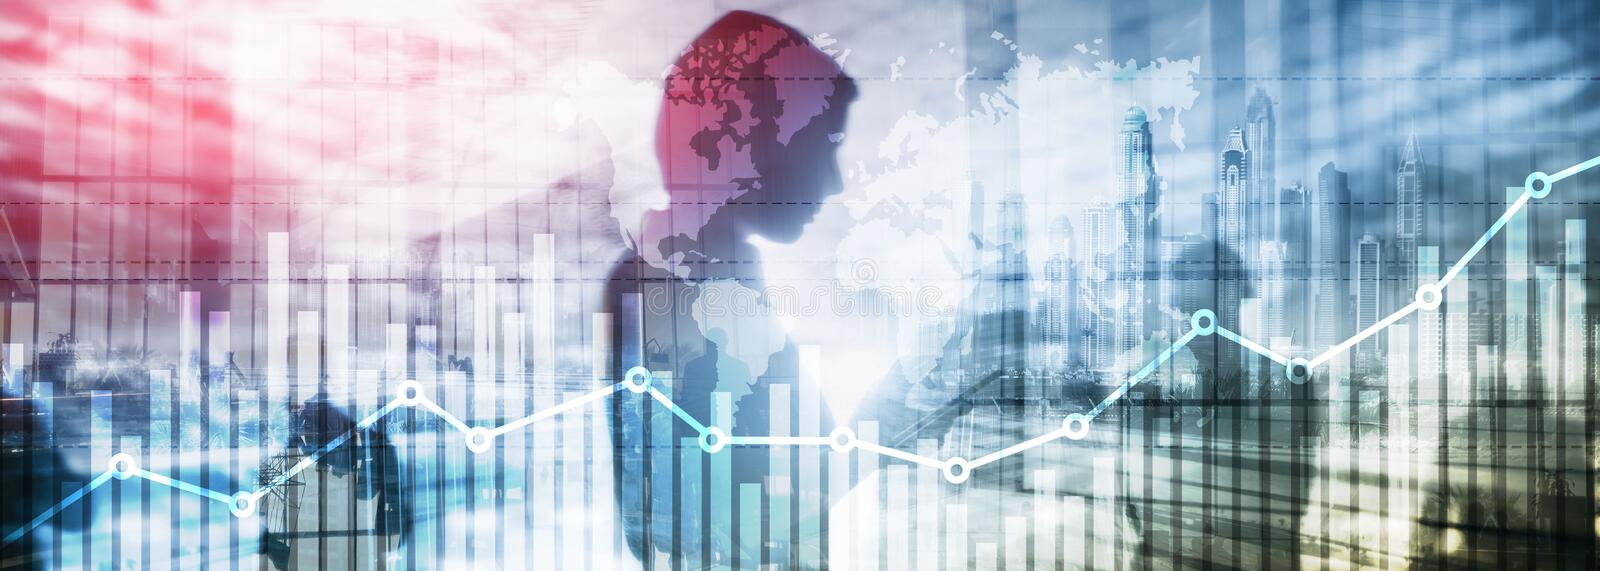 Business finance growth graph chart analysing diagram trading and forex exchange concept double exposure mixed media background. Website header stock illustration